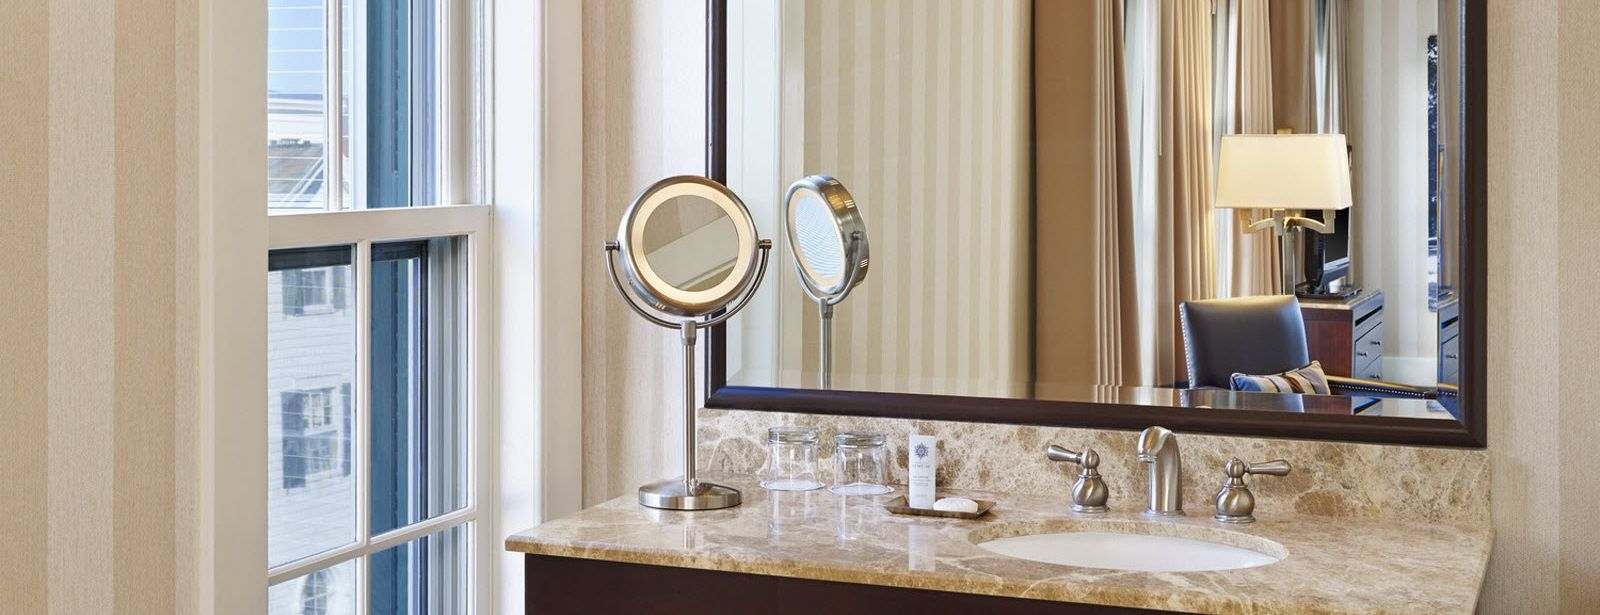 The Equinox, a Luxury Collection Golf Resort & Spa, Vermont deluxe guest room bathroom